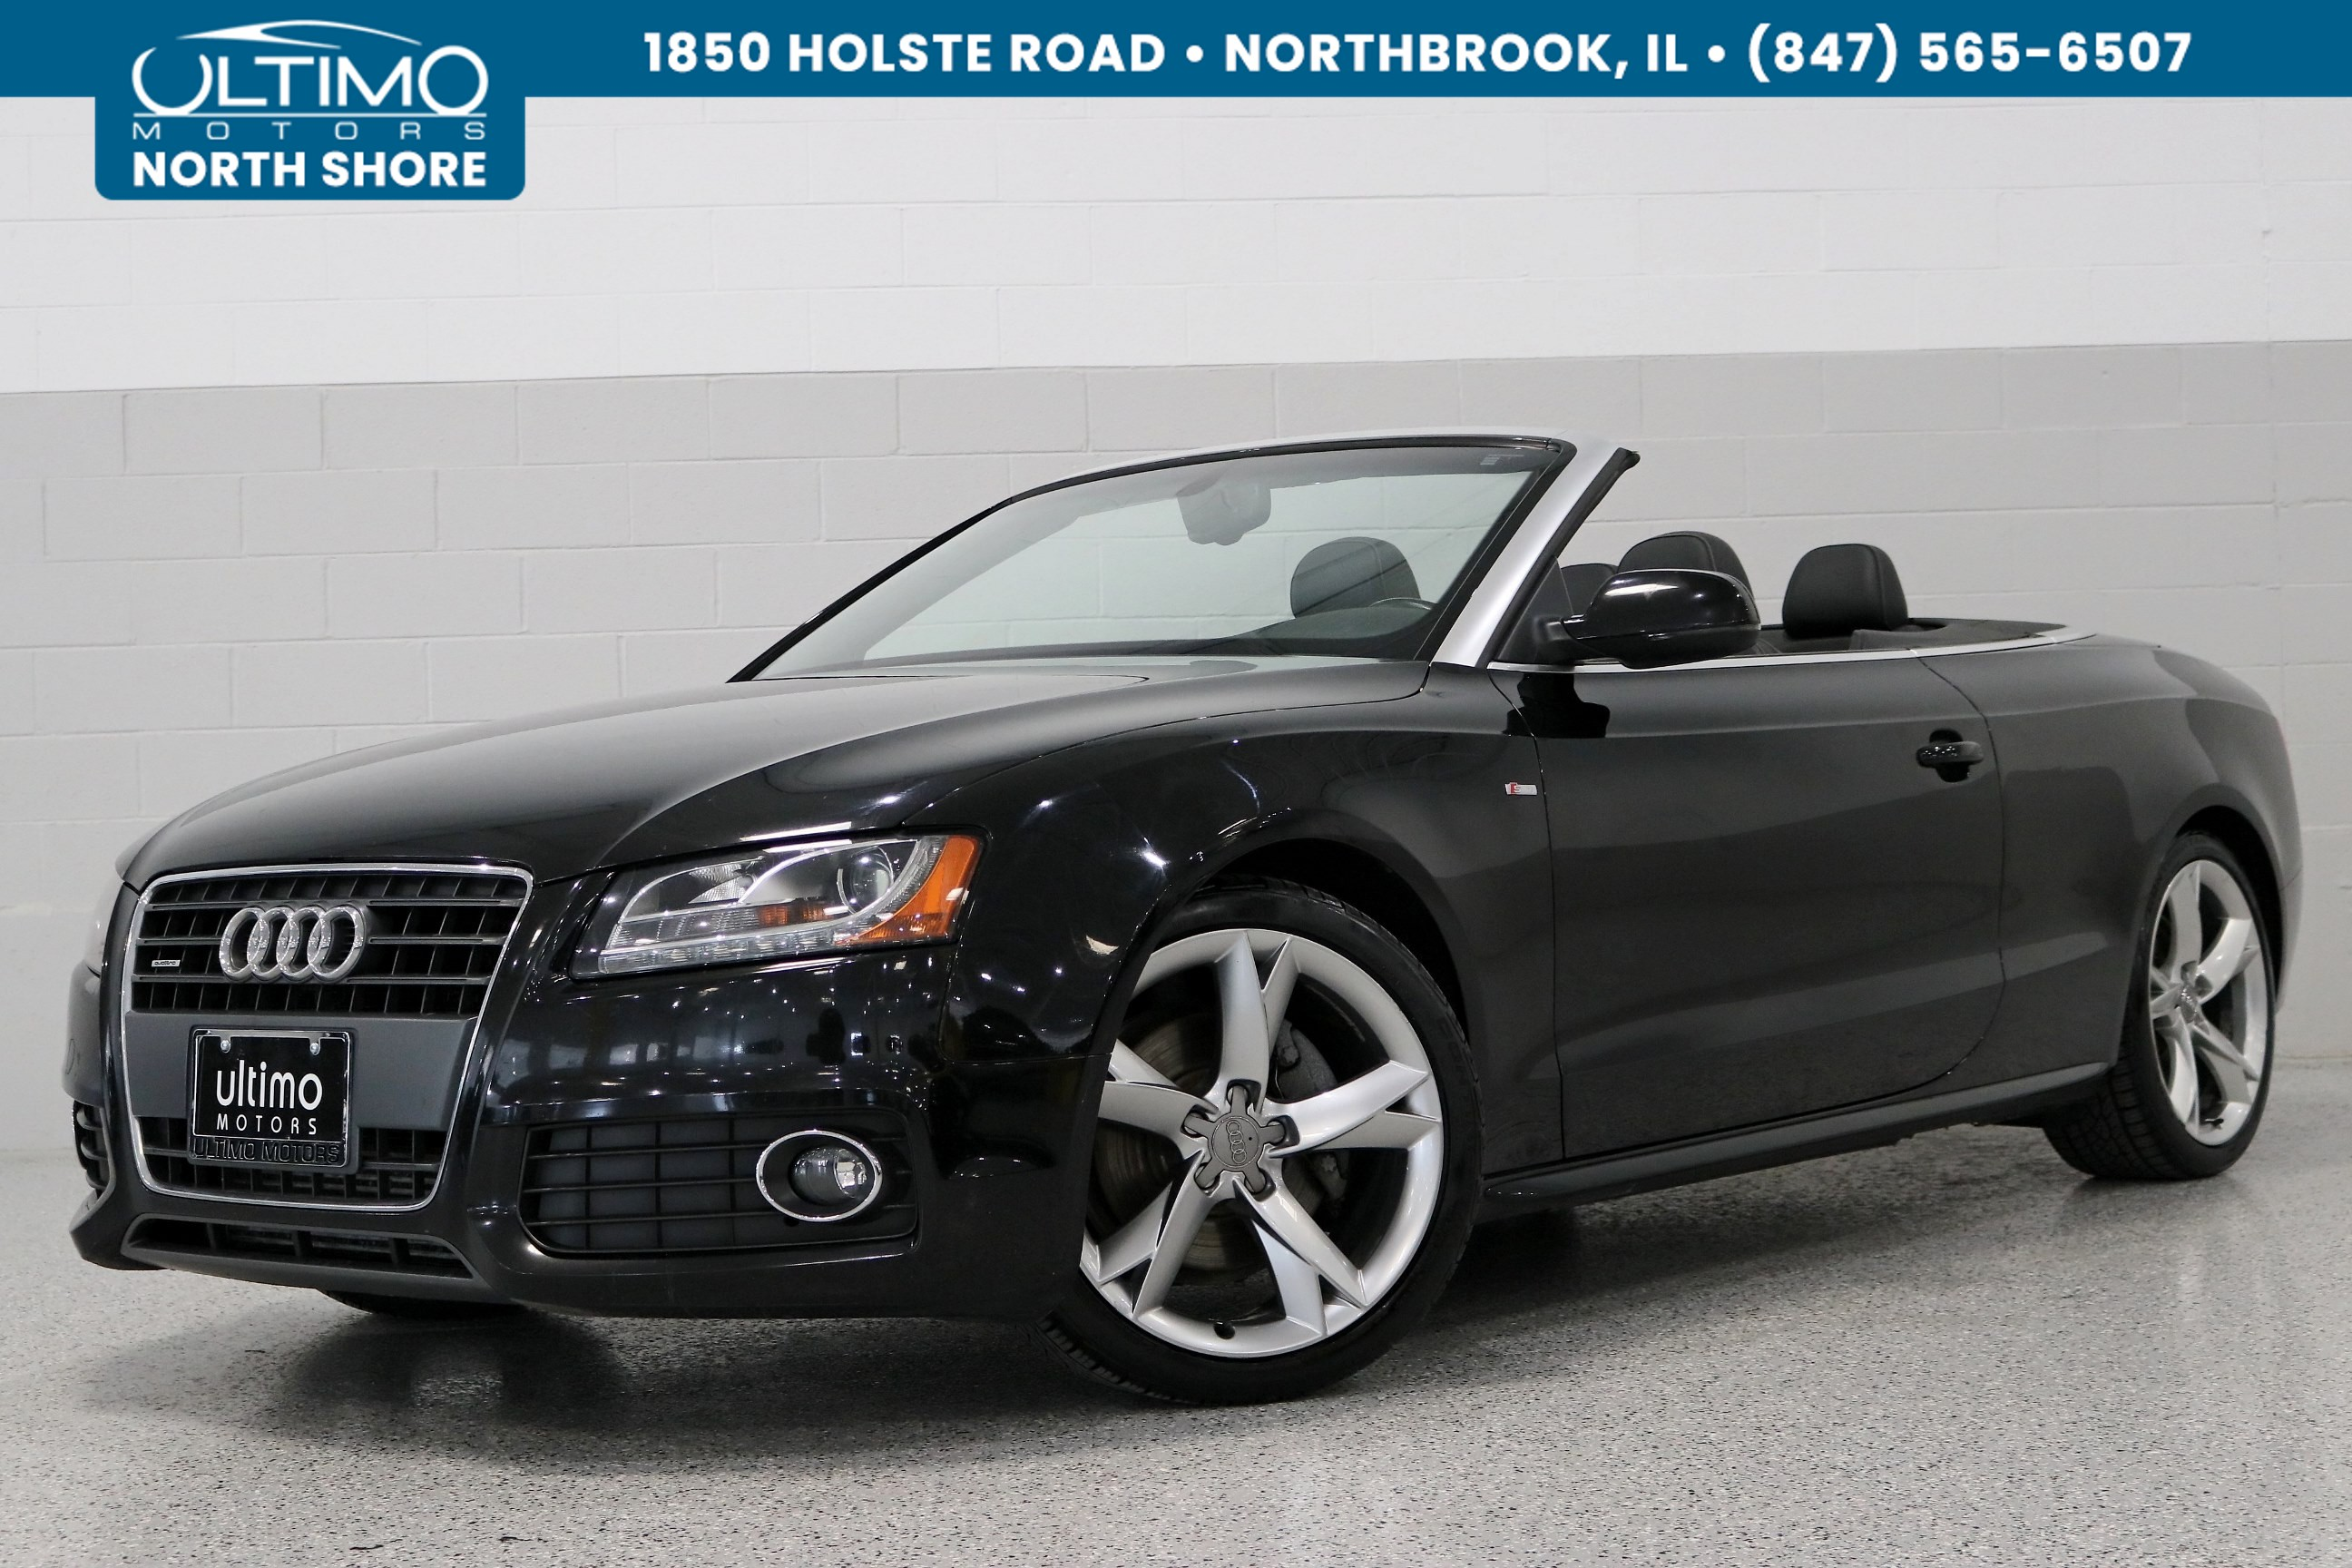 Pre-Owned 2011 Audi A5 2.0T Prestige, S Line, Side Assist